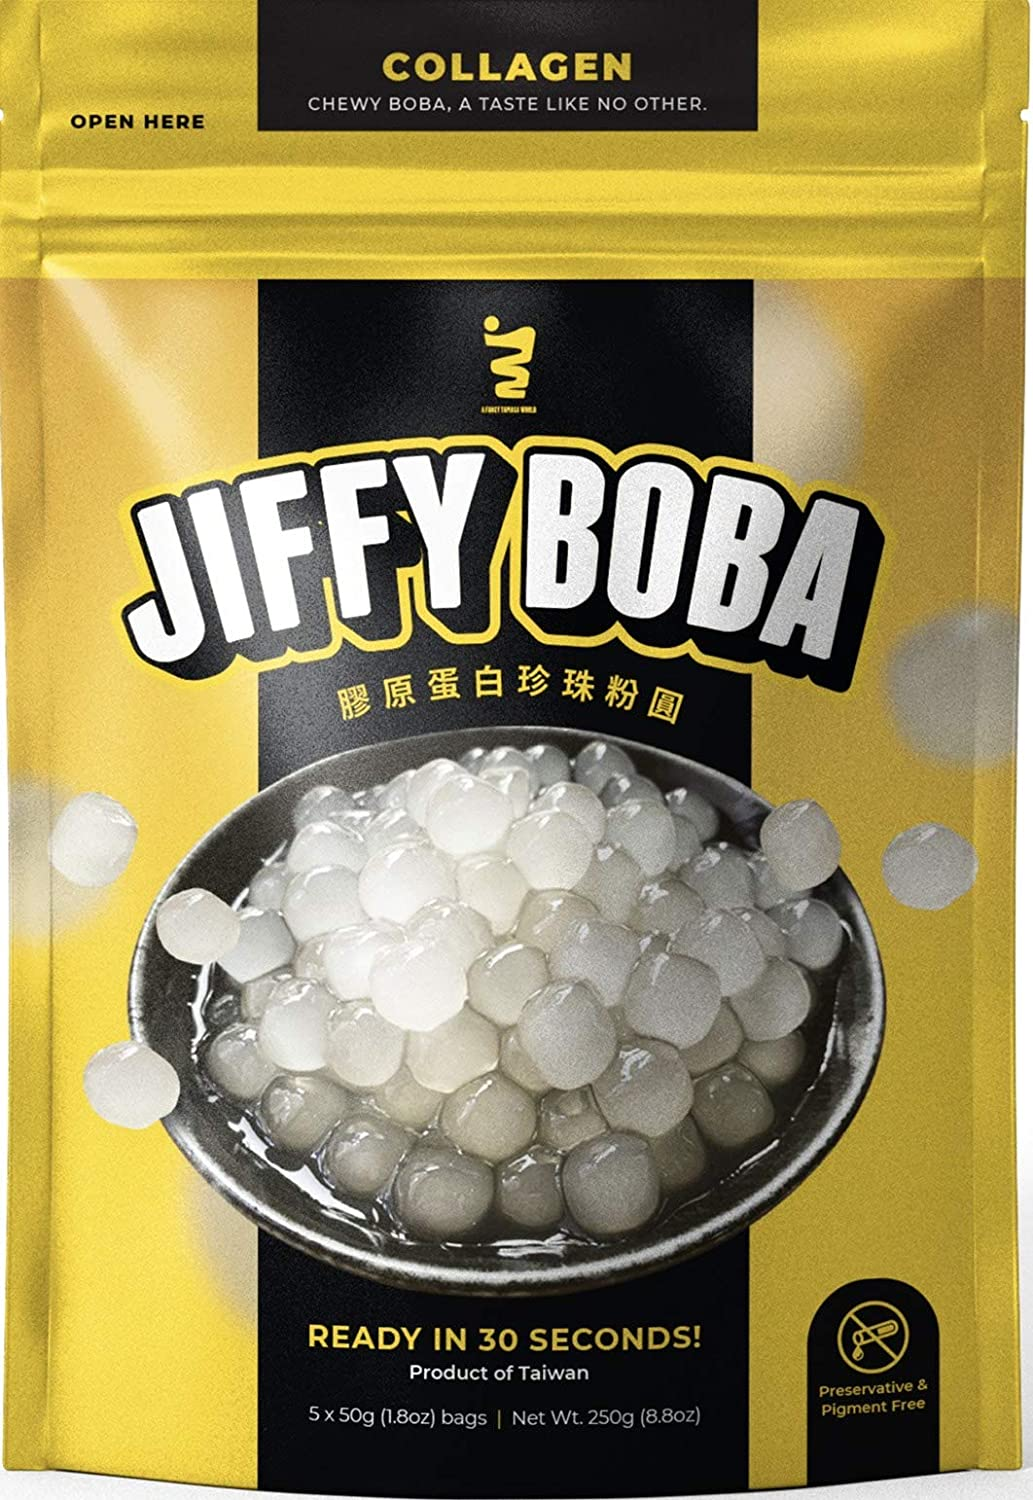 Oceana Jiffy Boba - Instant Collagen Tapioca Pearls (Ready in 30 Seconds) - Chewy Boba Pearls for Bubble Tea, Lightly Sweetened Flavor - Preservative & Food Colours Free - 5 Servings